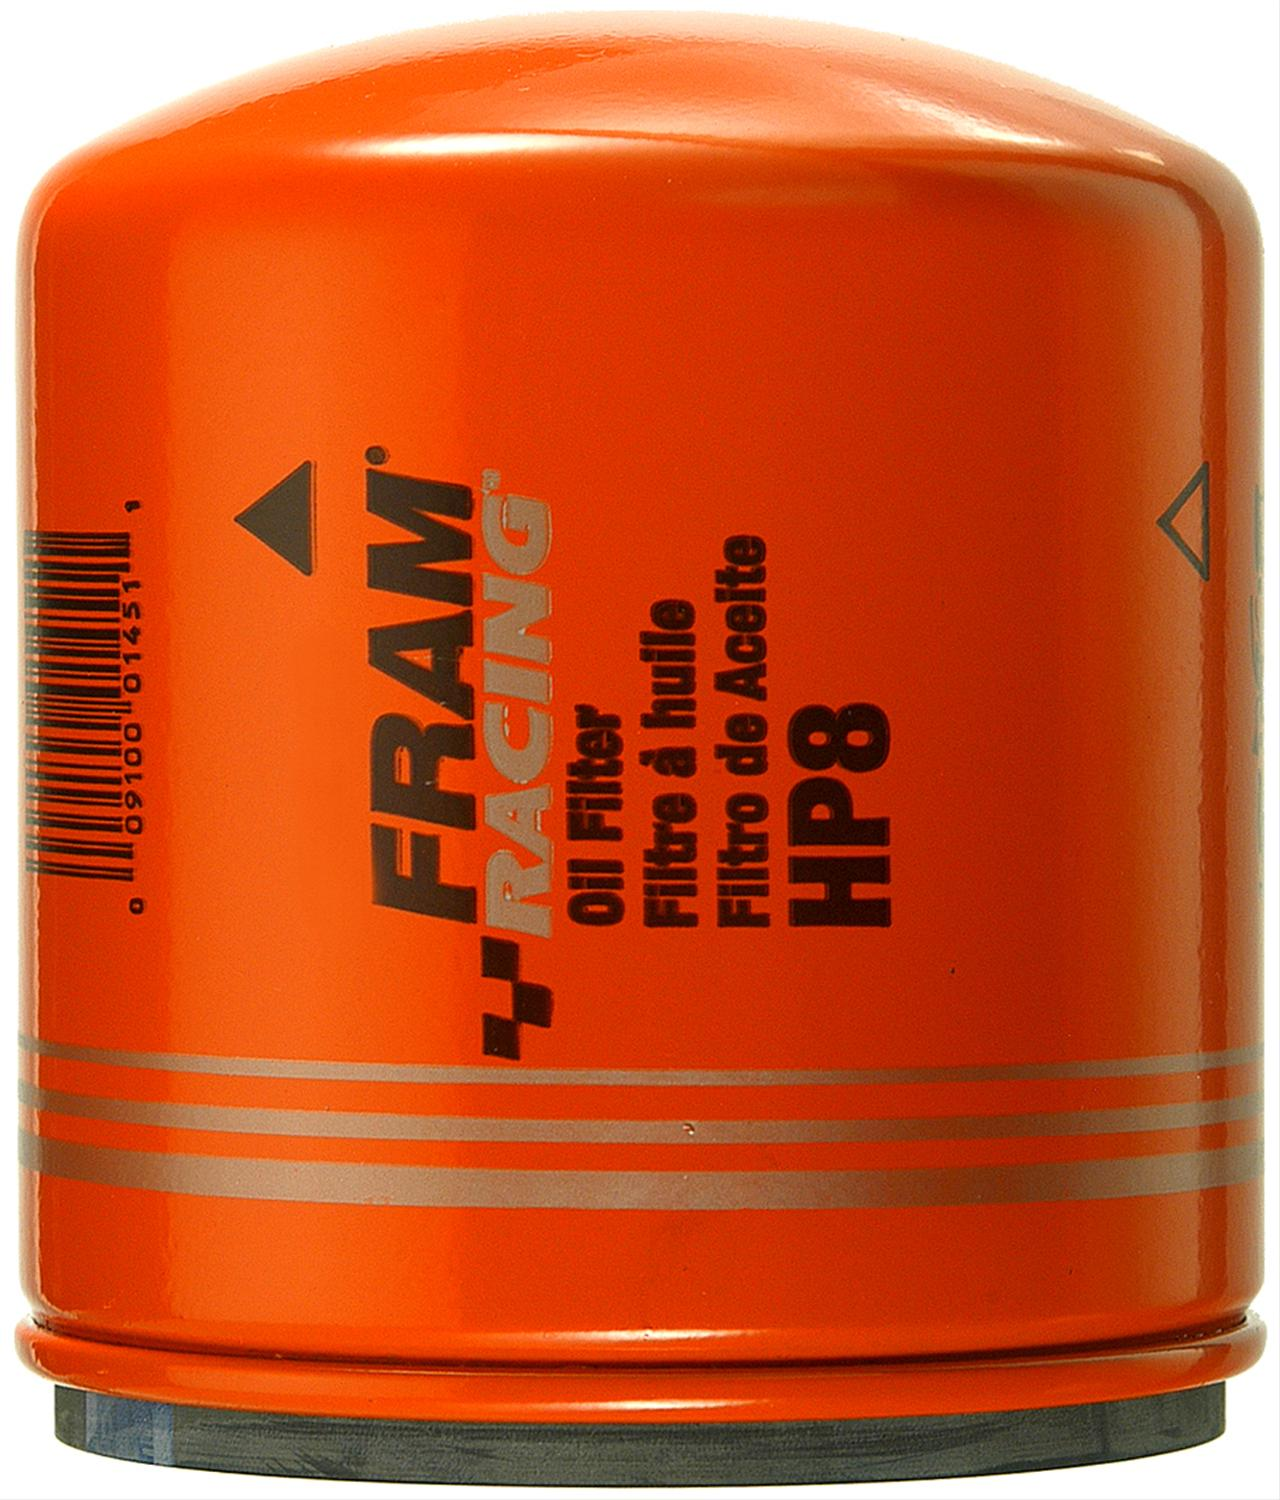 Fram HP Series Oil Filters HP8 - Free Shipping on Orders Over $49 at Summit  Racing